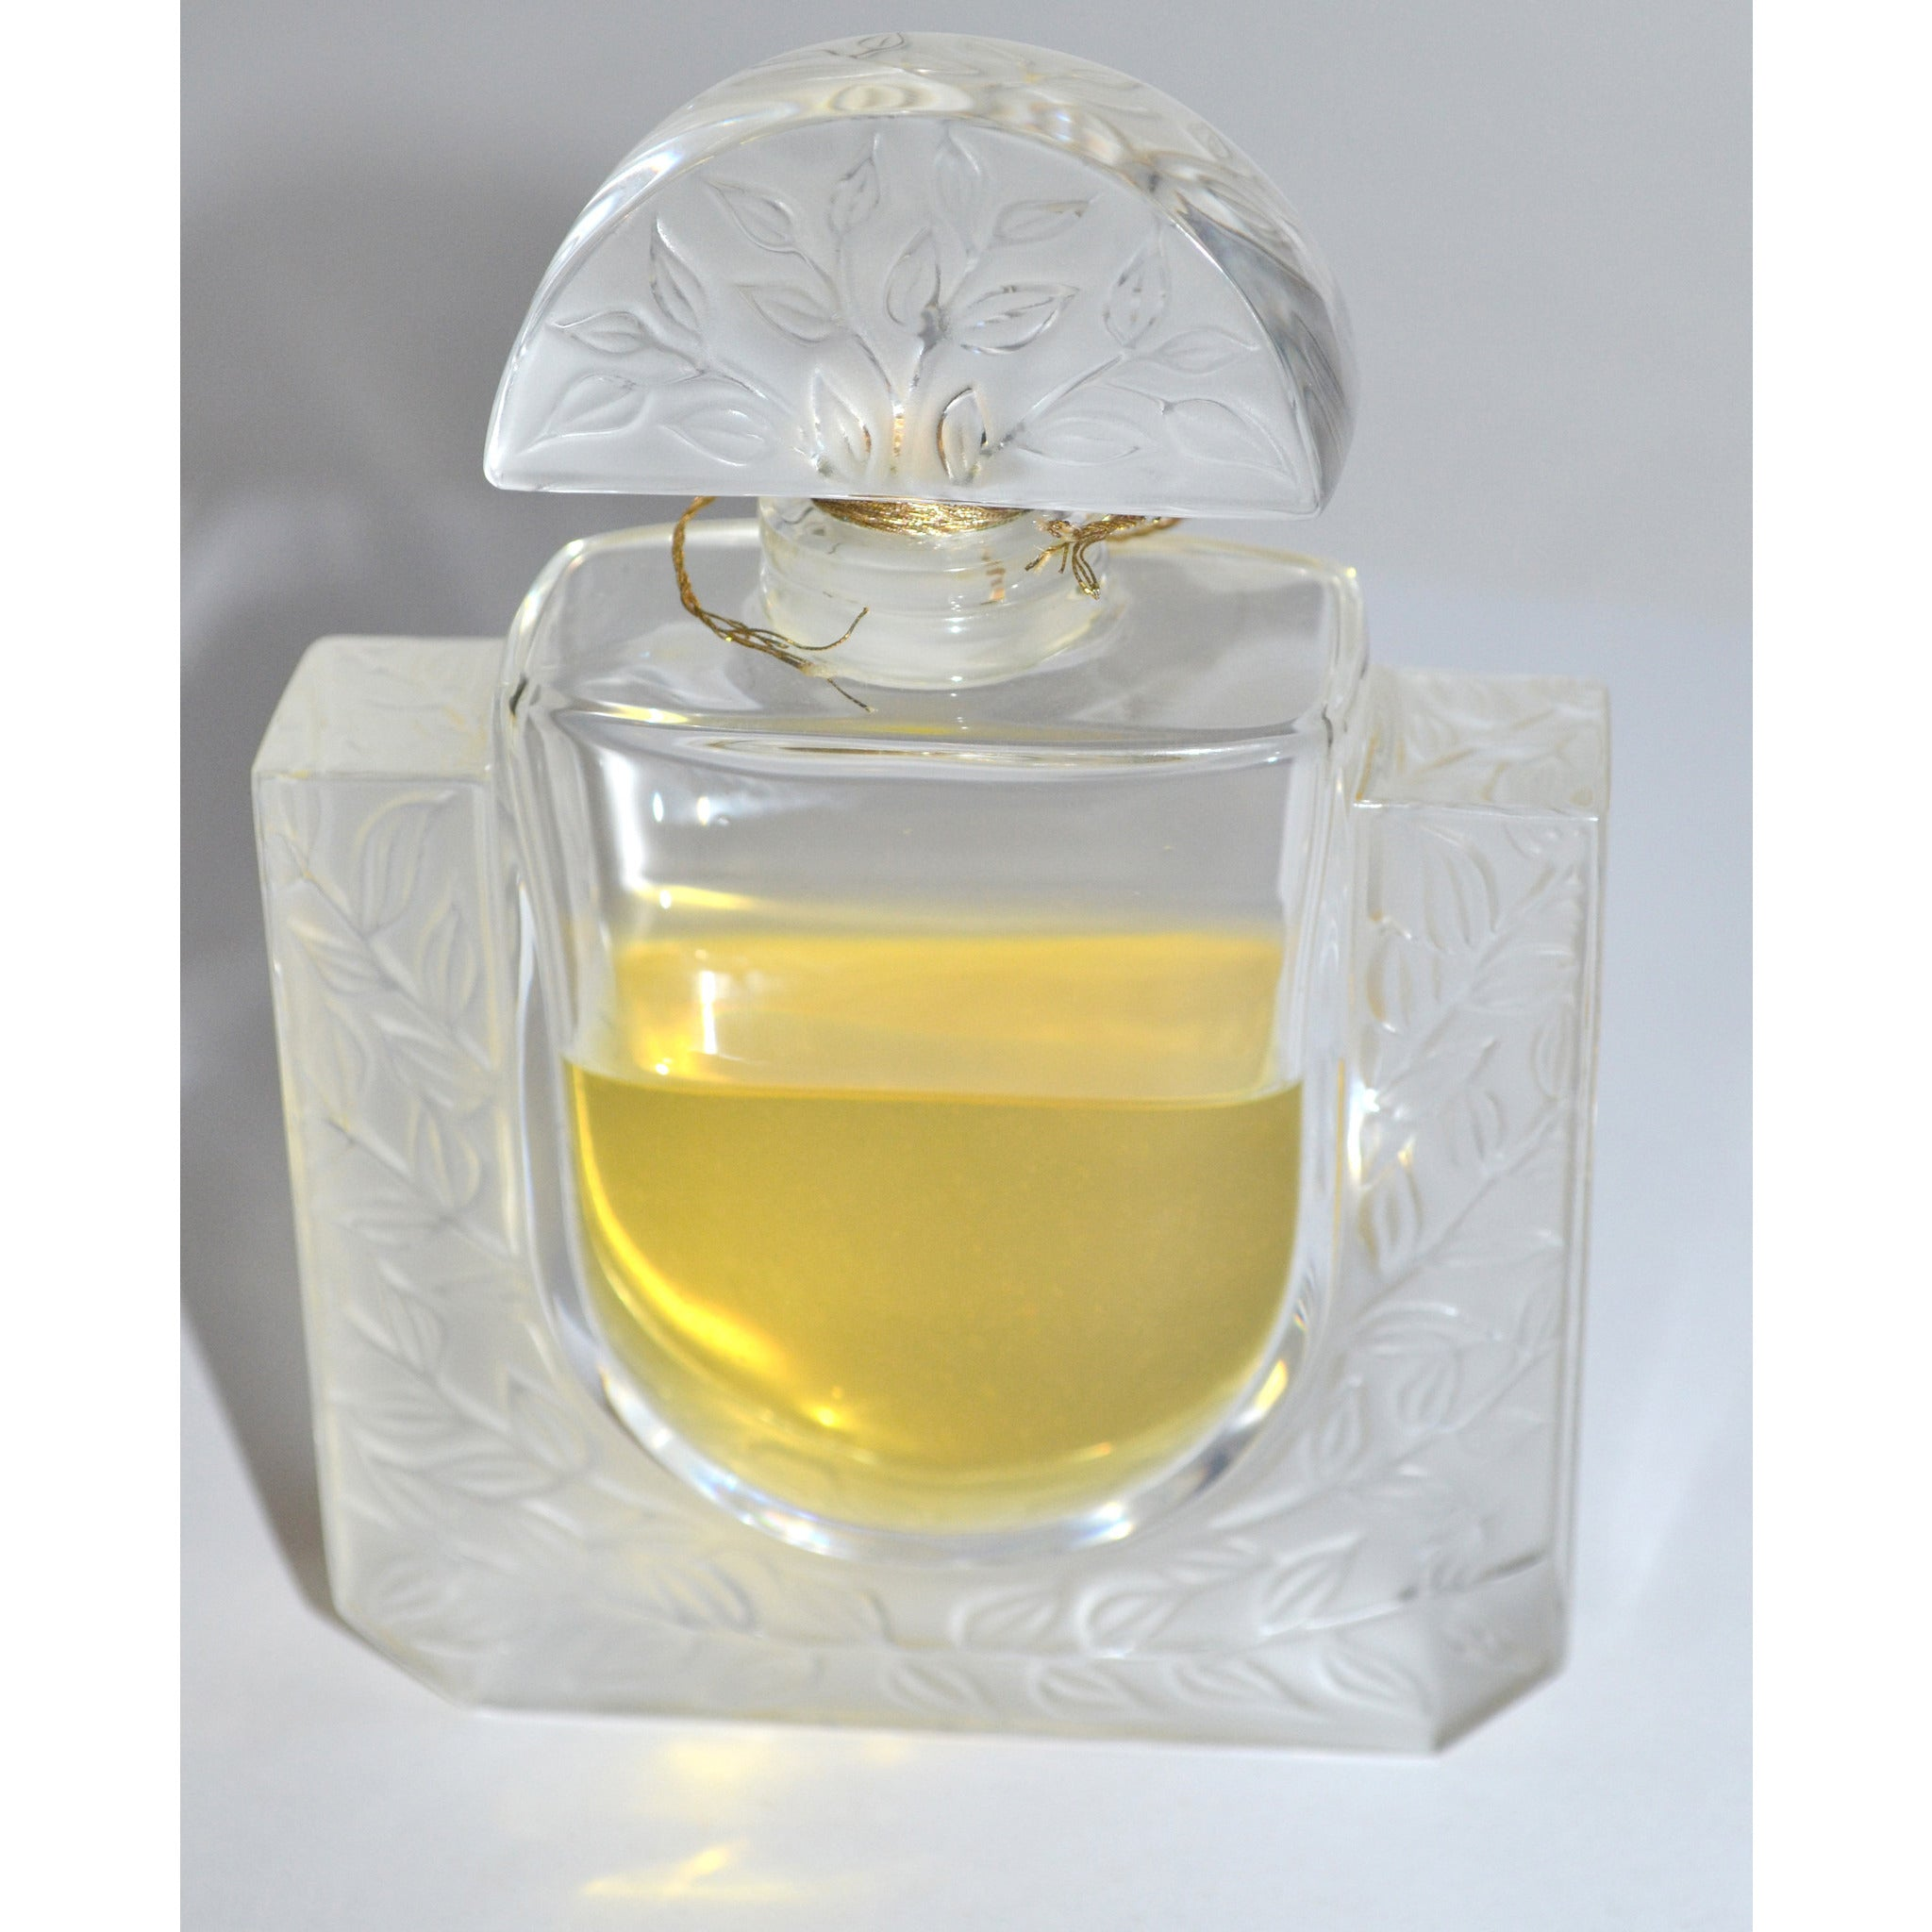 Lalique Chèvrefeuille Perfume By Lalique 1993 Limited Flacon Collection